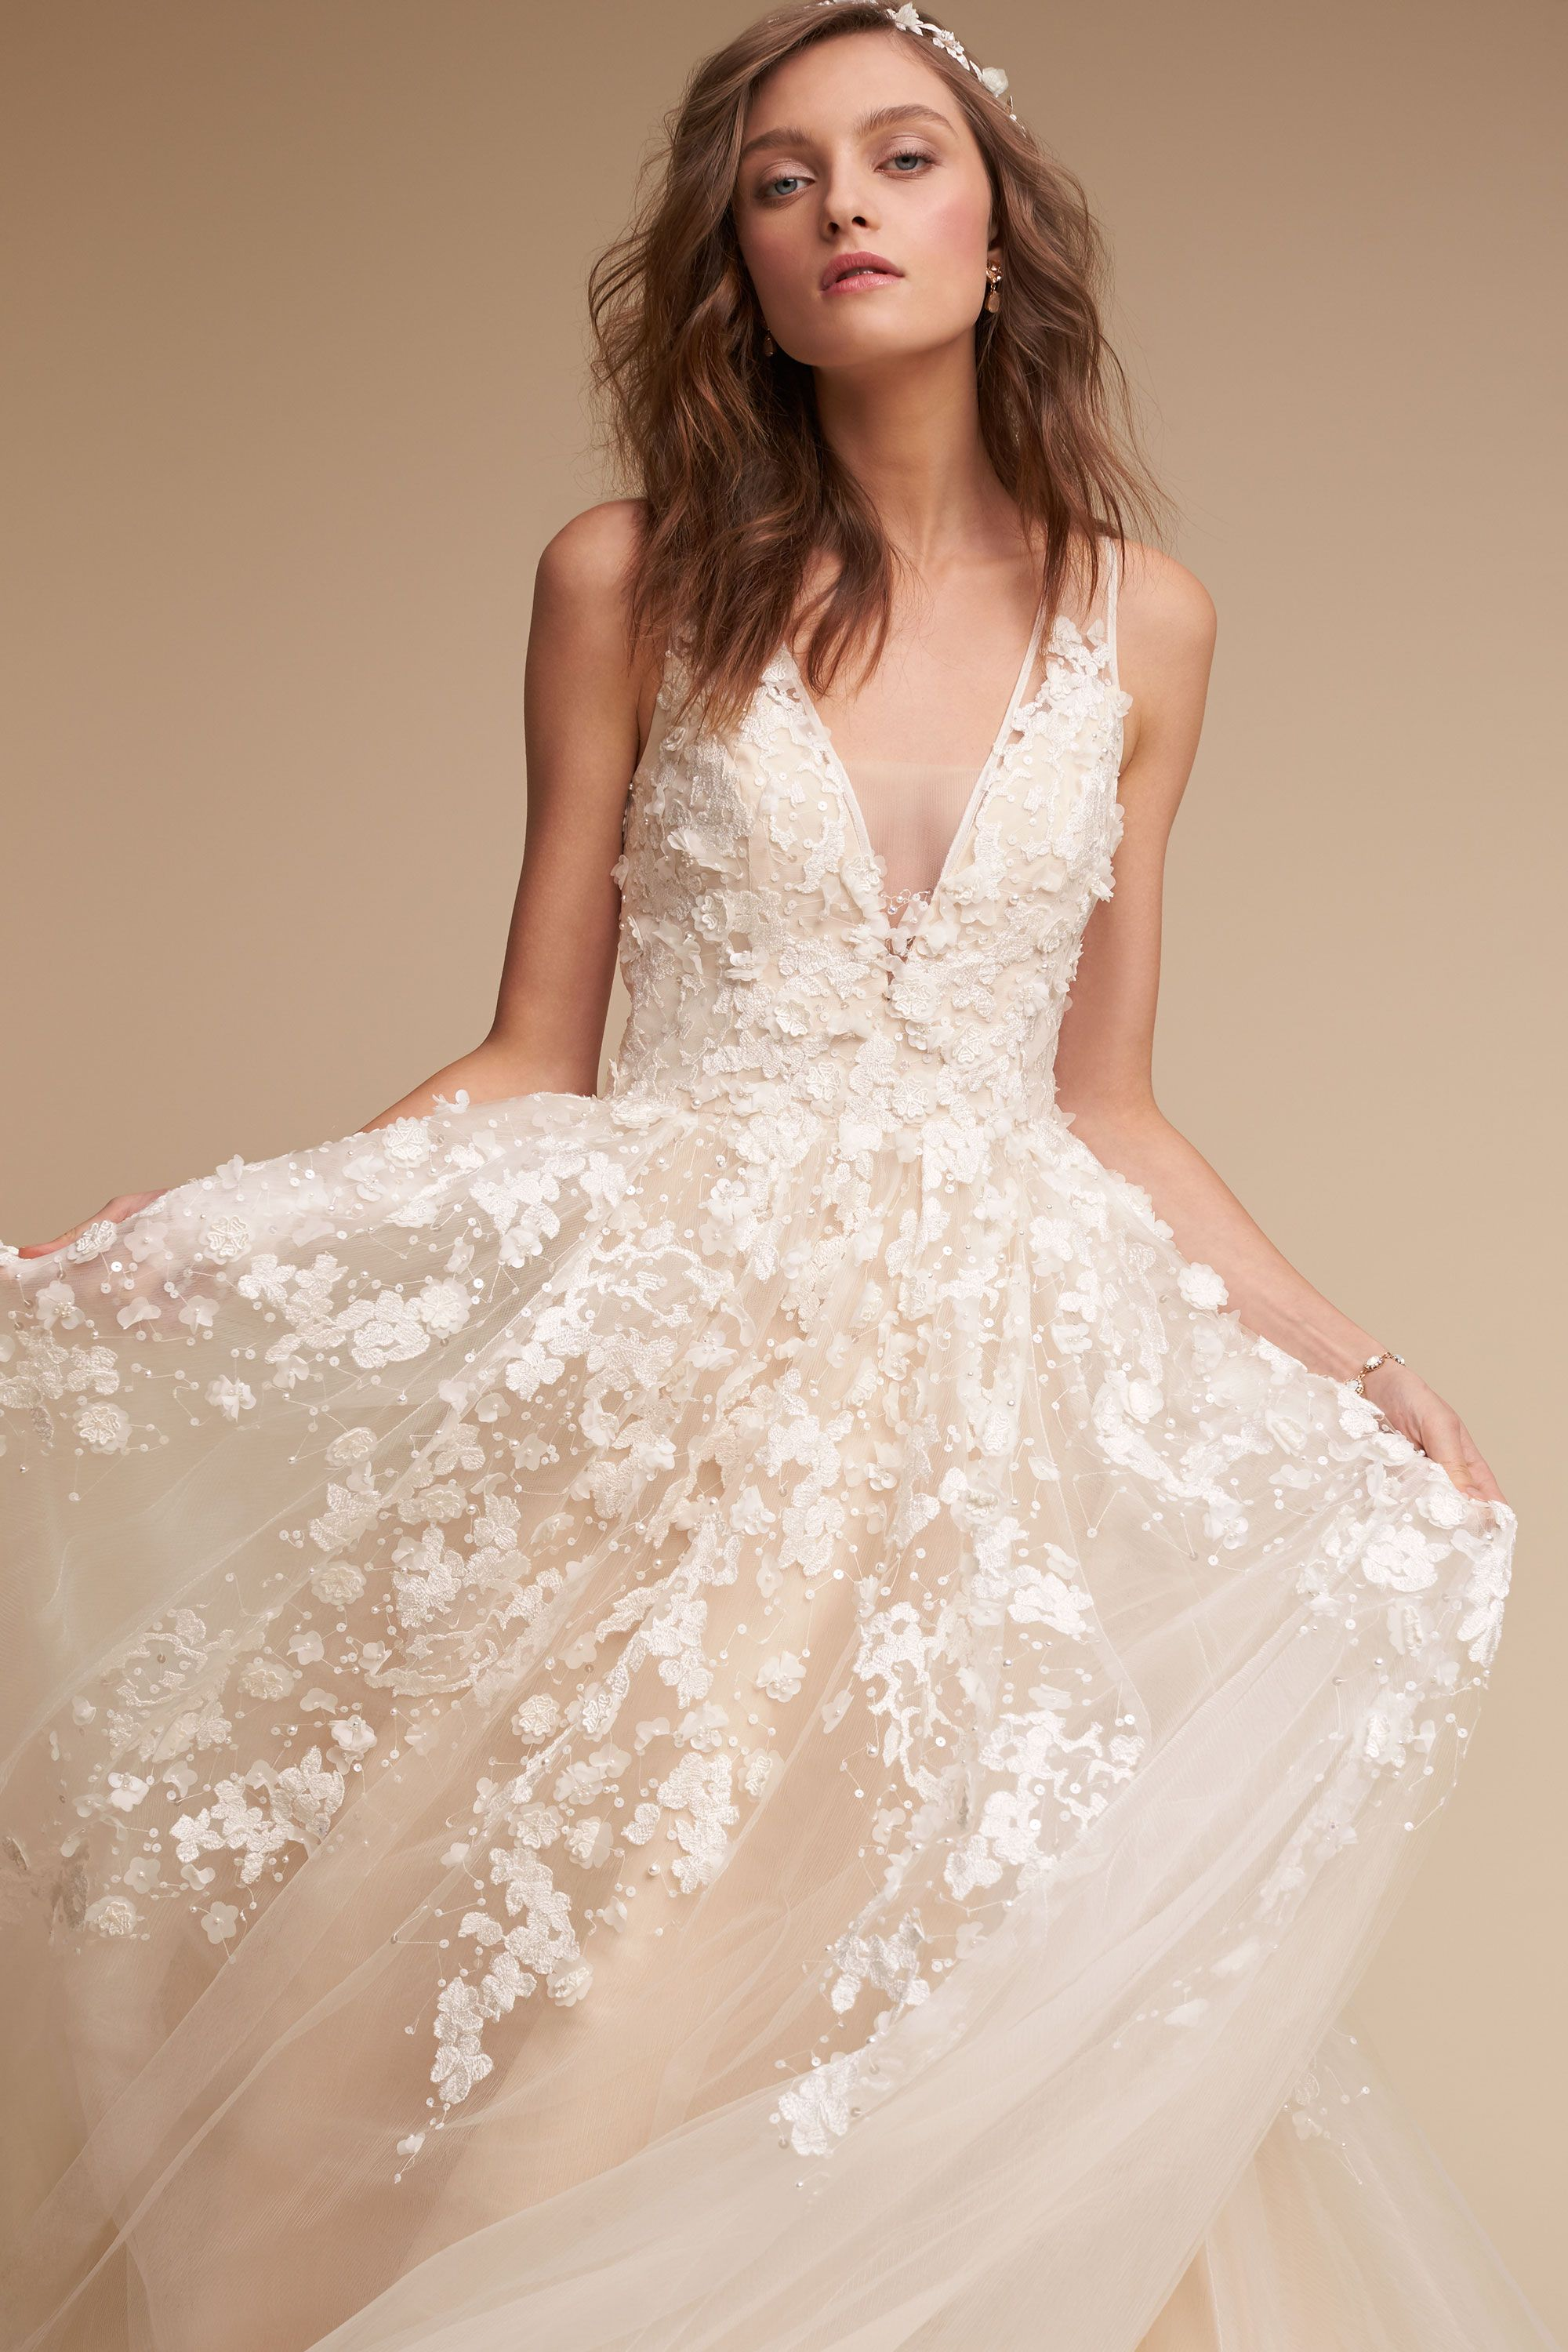 Dreamy BHLDN Wedding Dresses - Ariane Gown